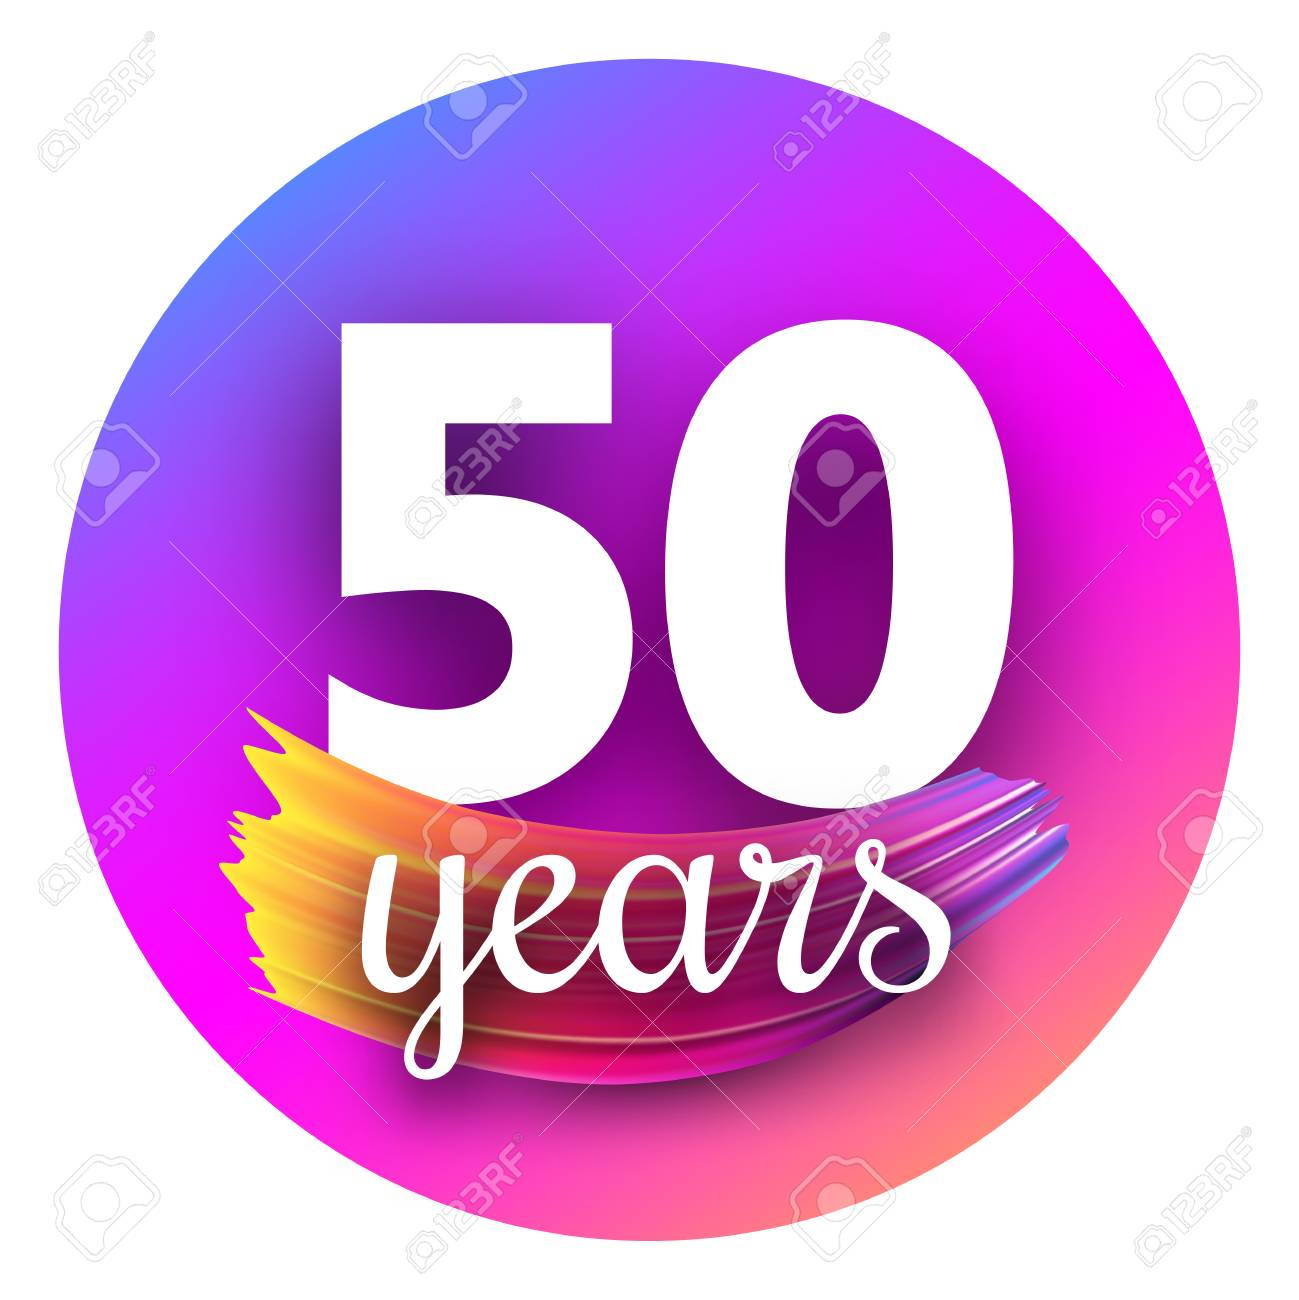 Round spectrum fifty years greeting card with brush stroke. Colorful gradient brush design. Vector paper illustration. - 106175331